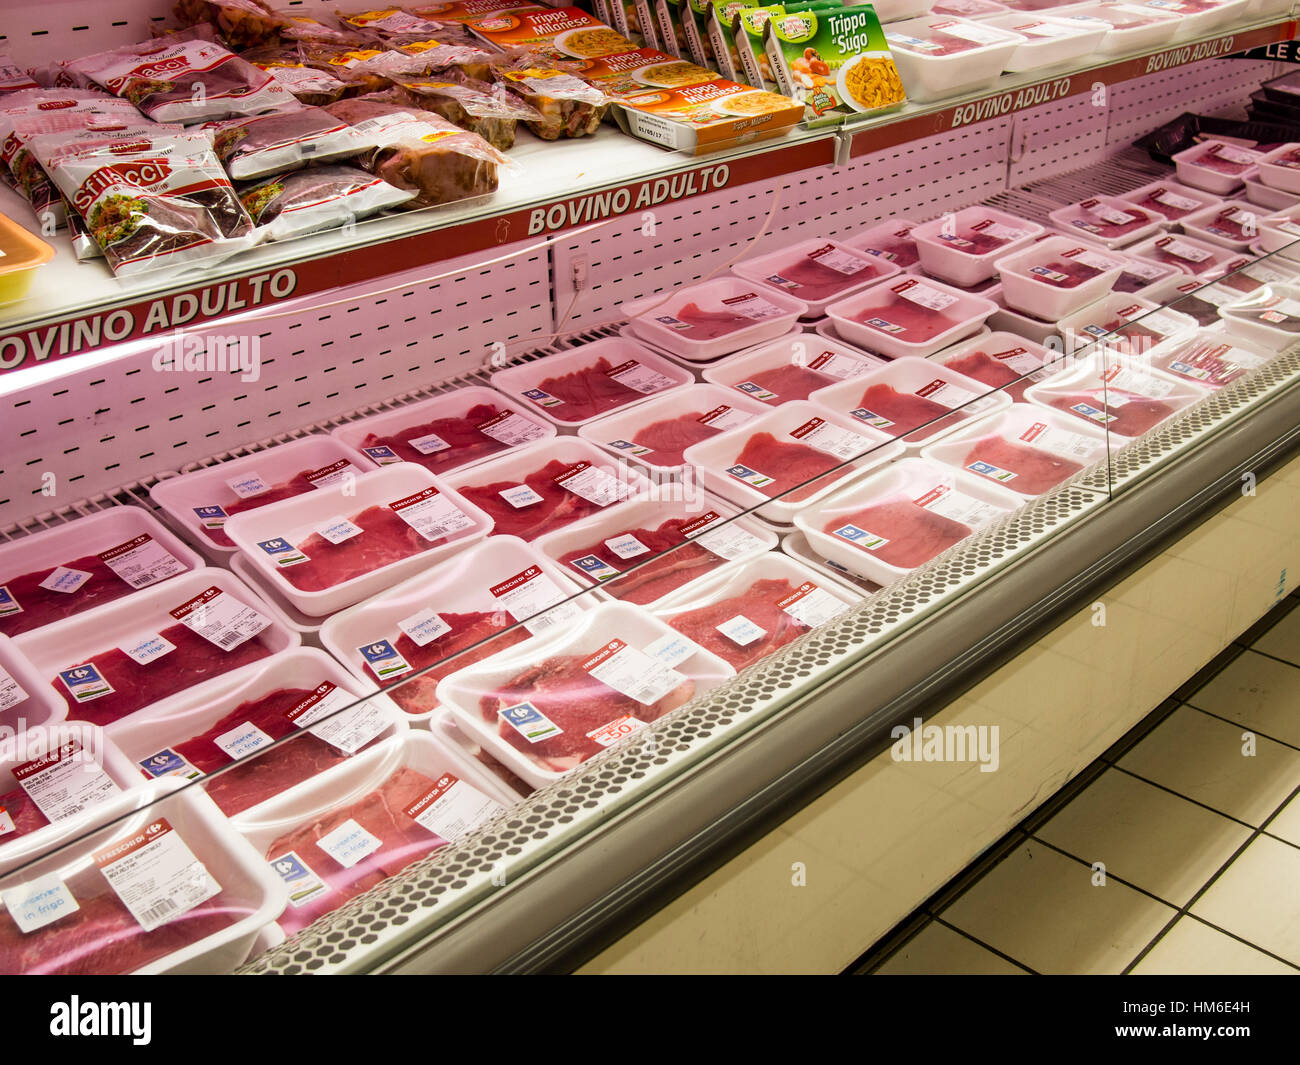 Carrefour Cuisine Bovine Red Meat Area At The Carrefour Market Store Cremona Italy